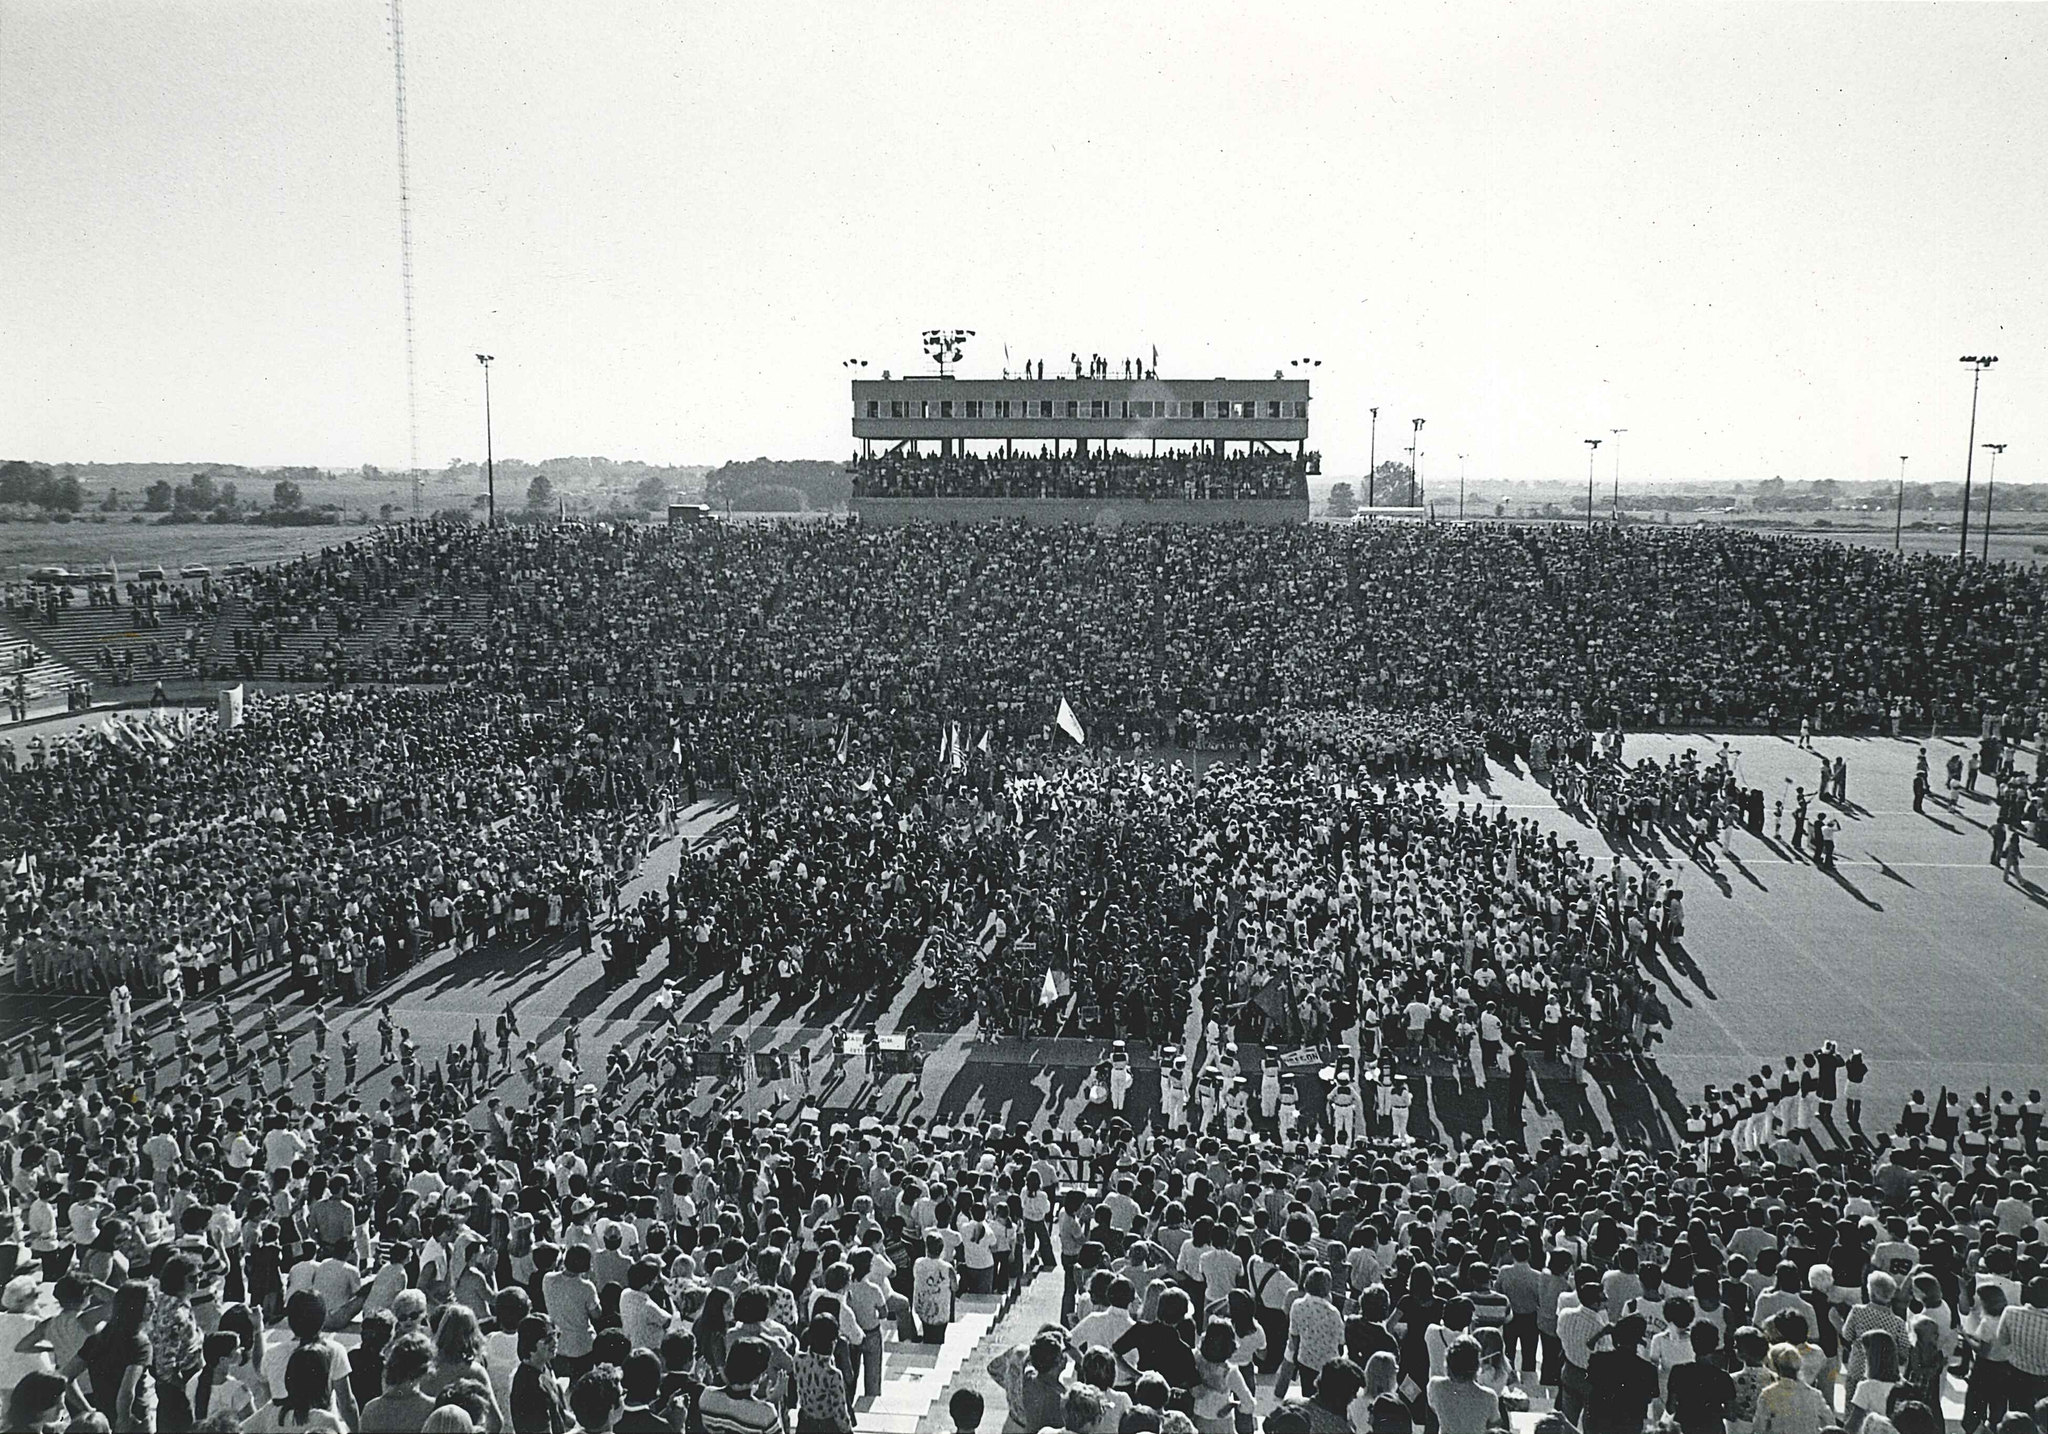 A crowd view of the 1975 World Games at Central Michigan University